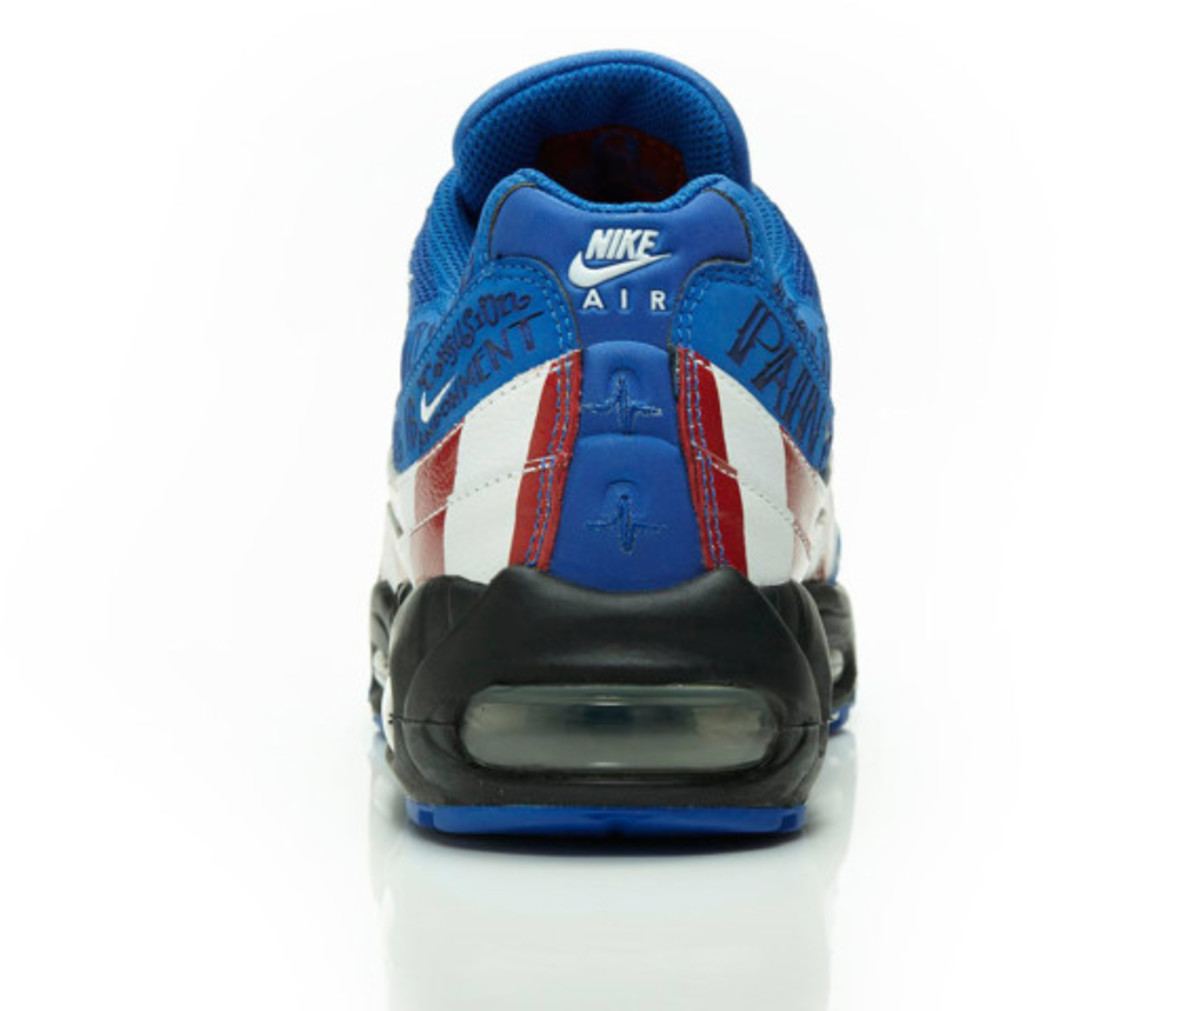 nike-doernbecher-2007-retro-air-max-95-by-mike-armstrong-05